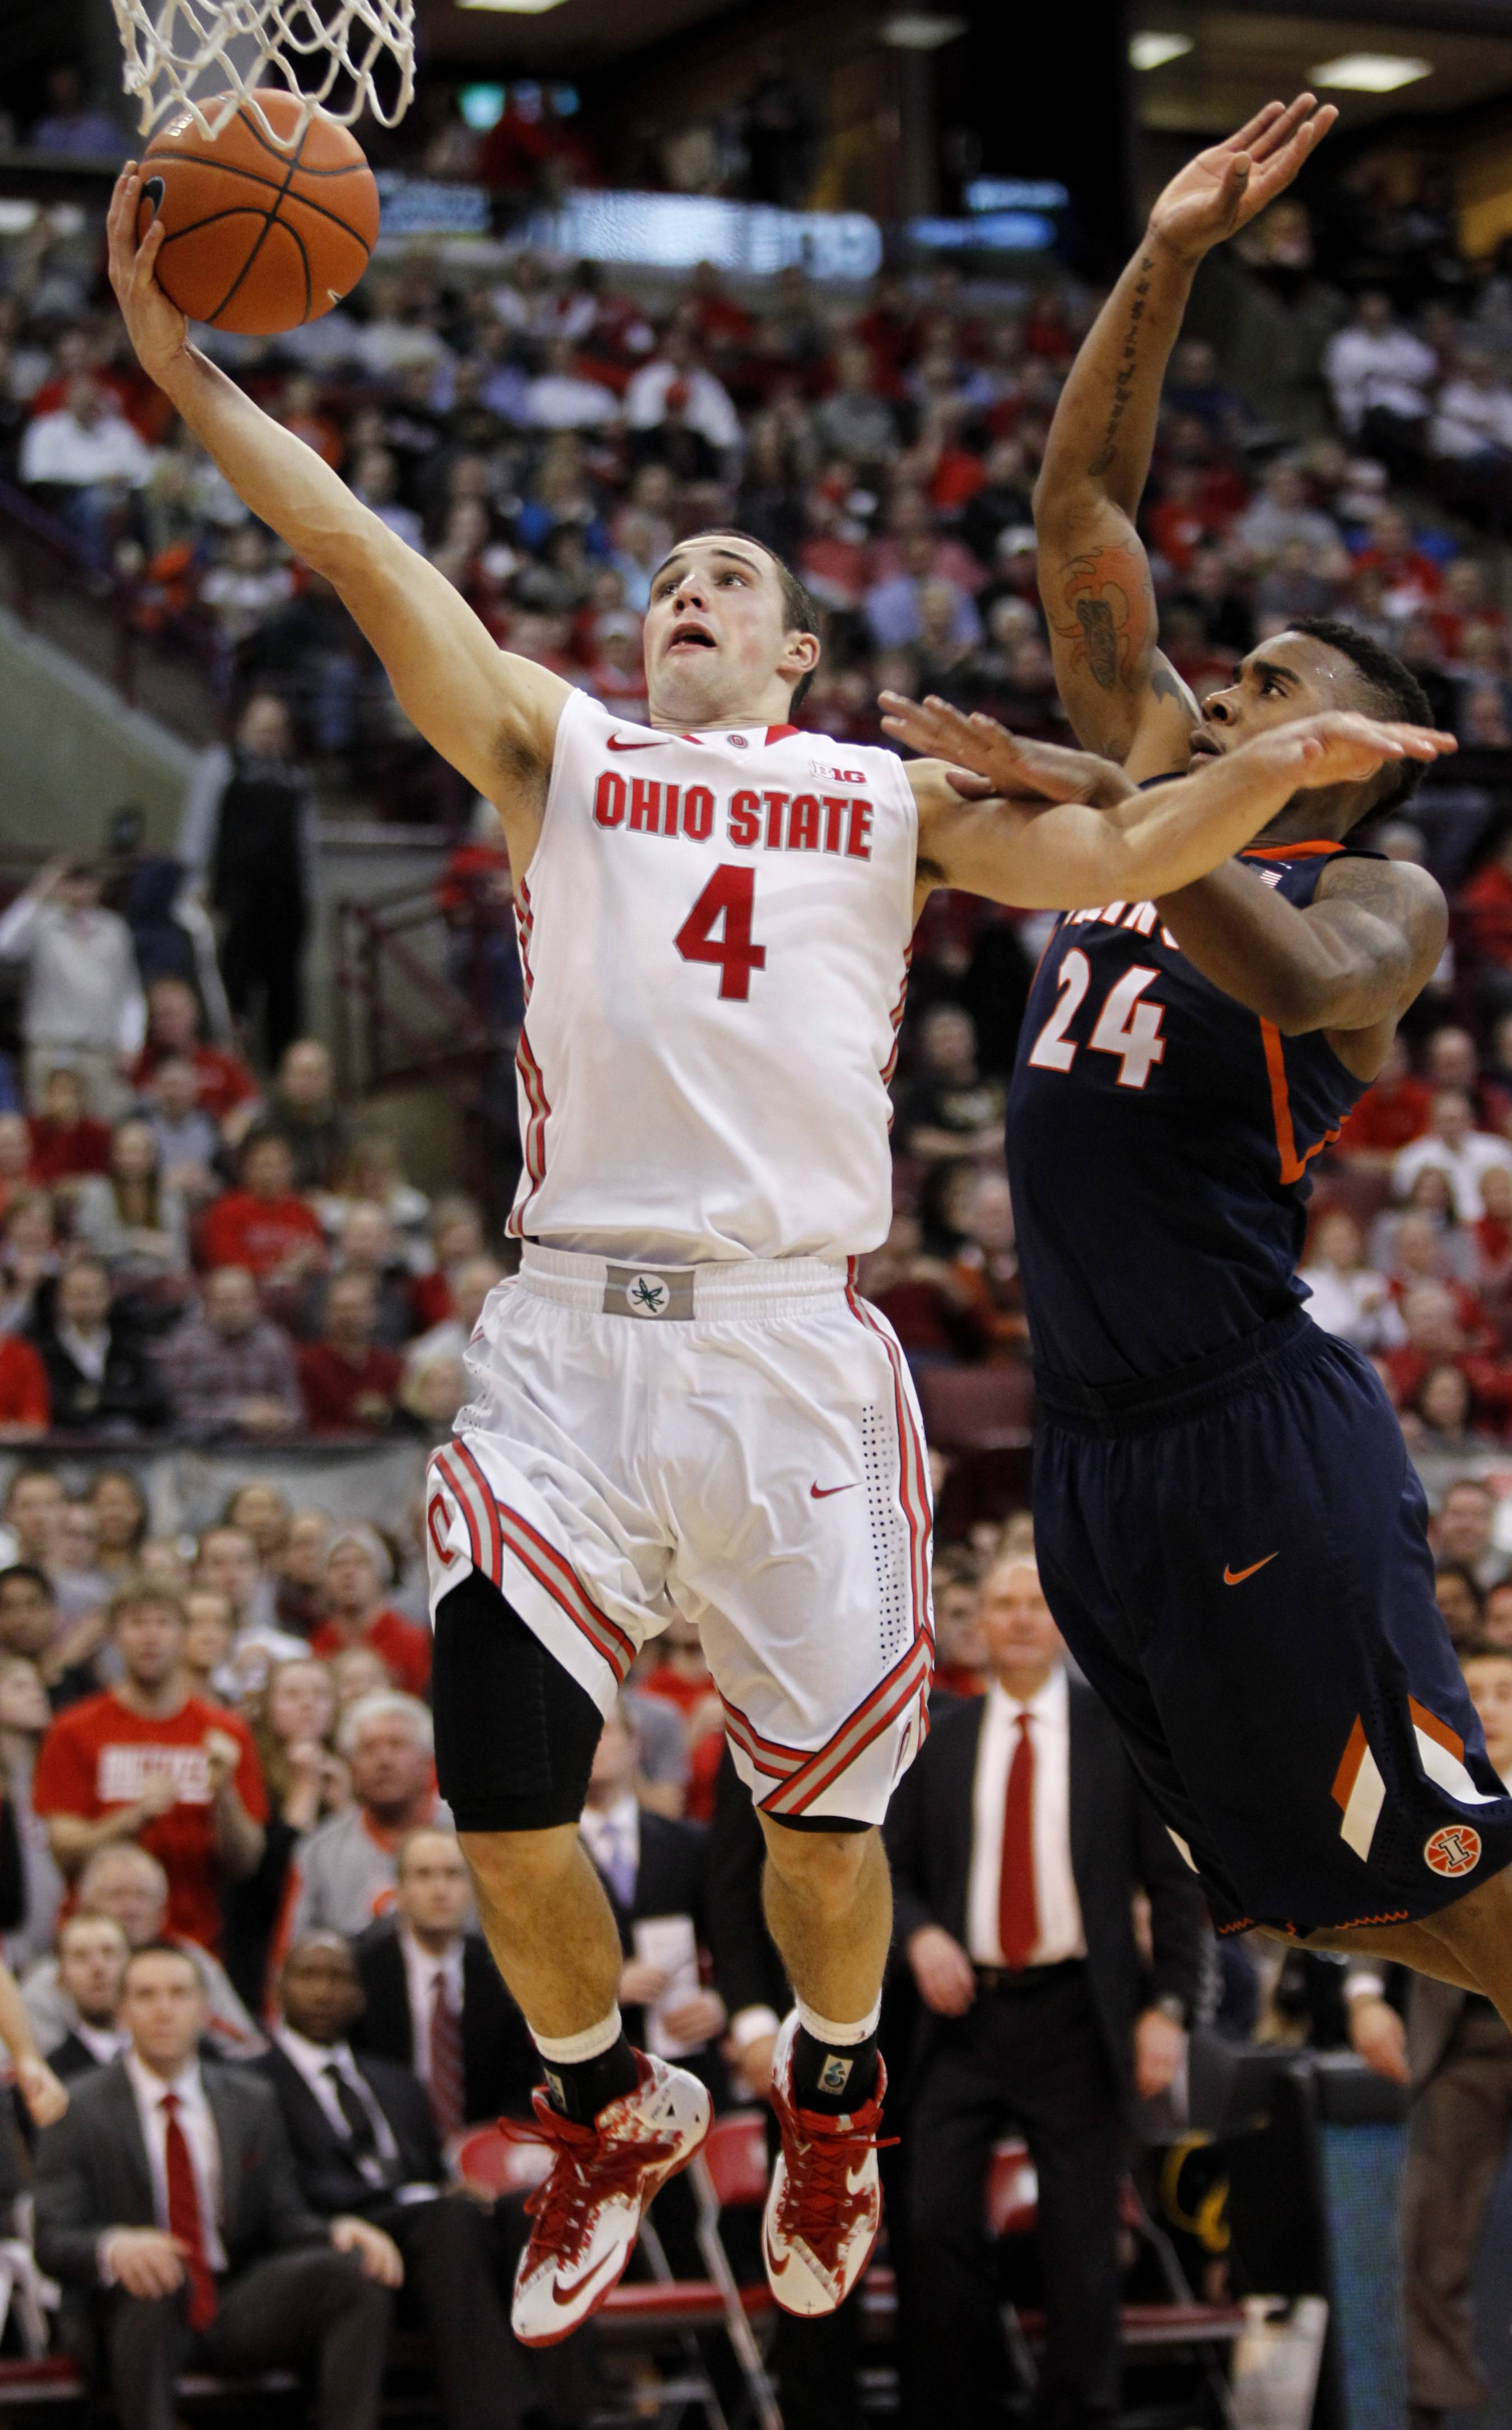 Aaron Craft and the rest of the Ohio State Buckeyes have righted themselves from an awful 1-5 span in January and have now turned that around by going 5-1.